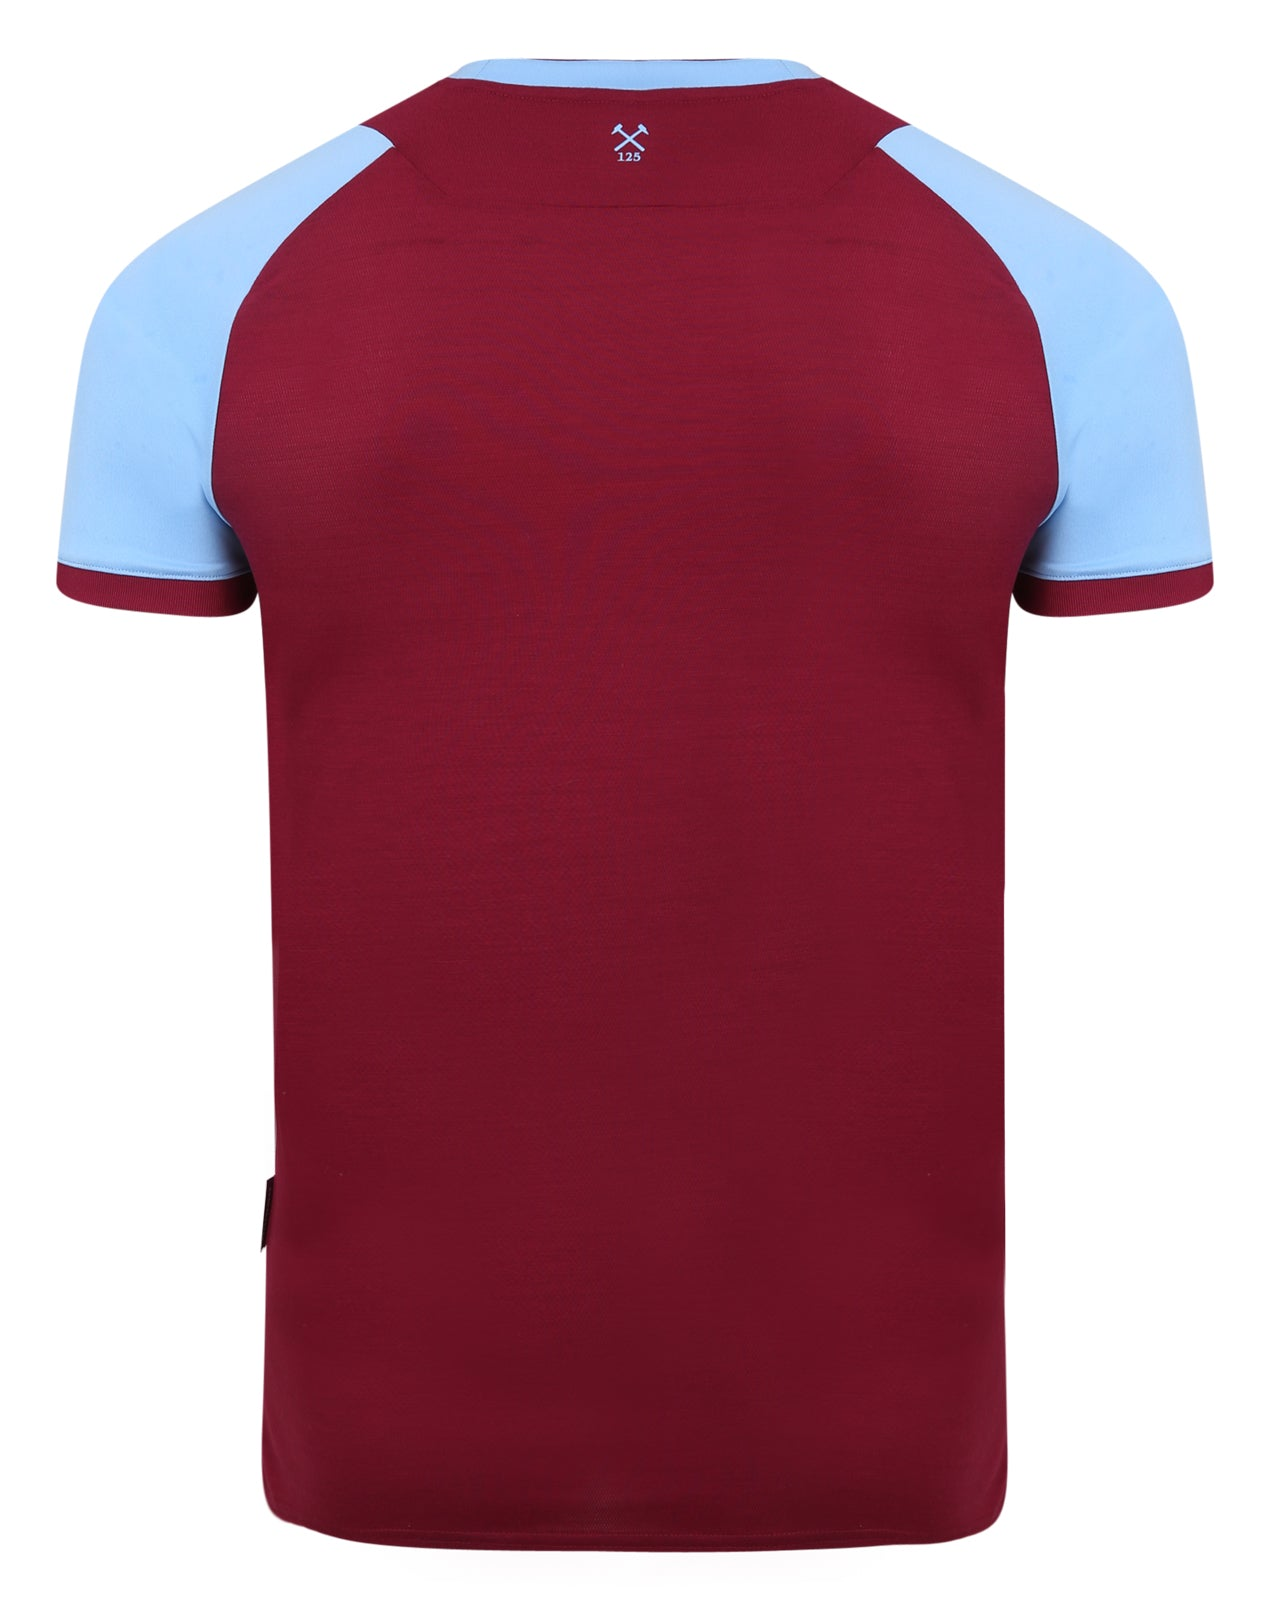 2020 WEST HAM HOME JERSEY S/S